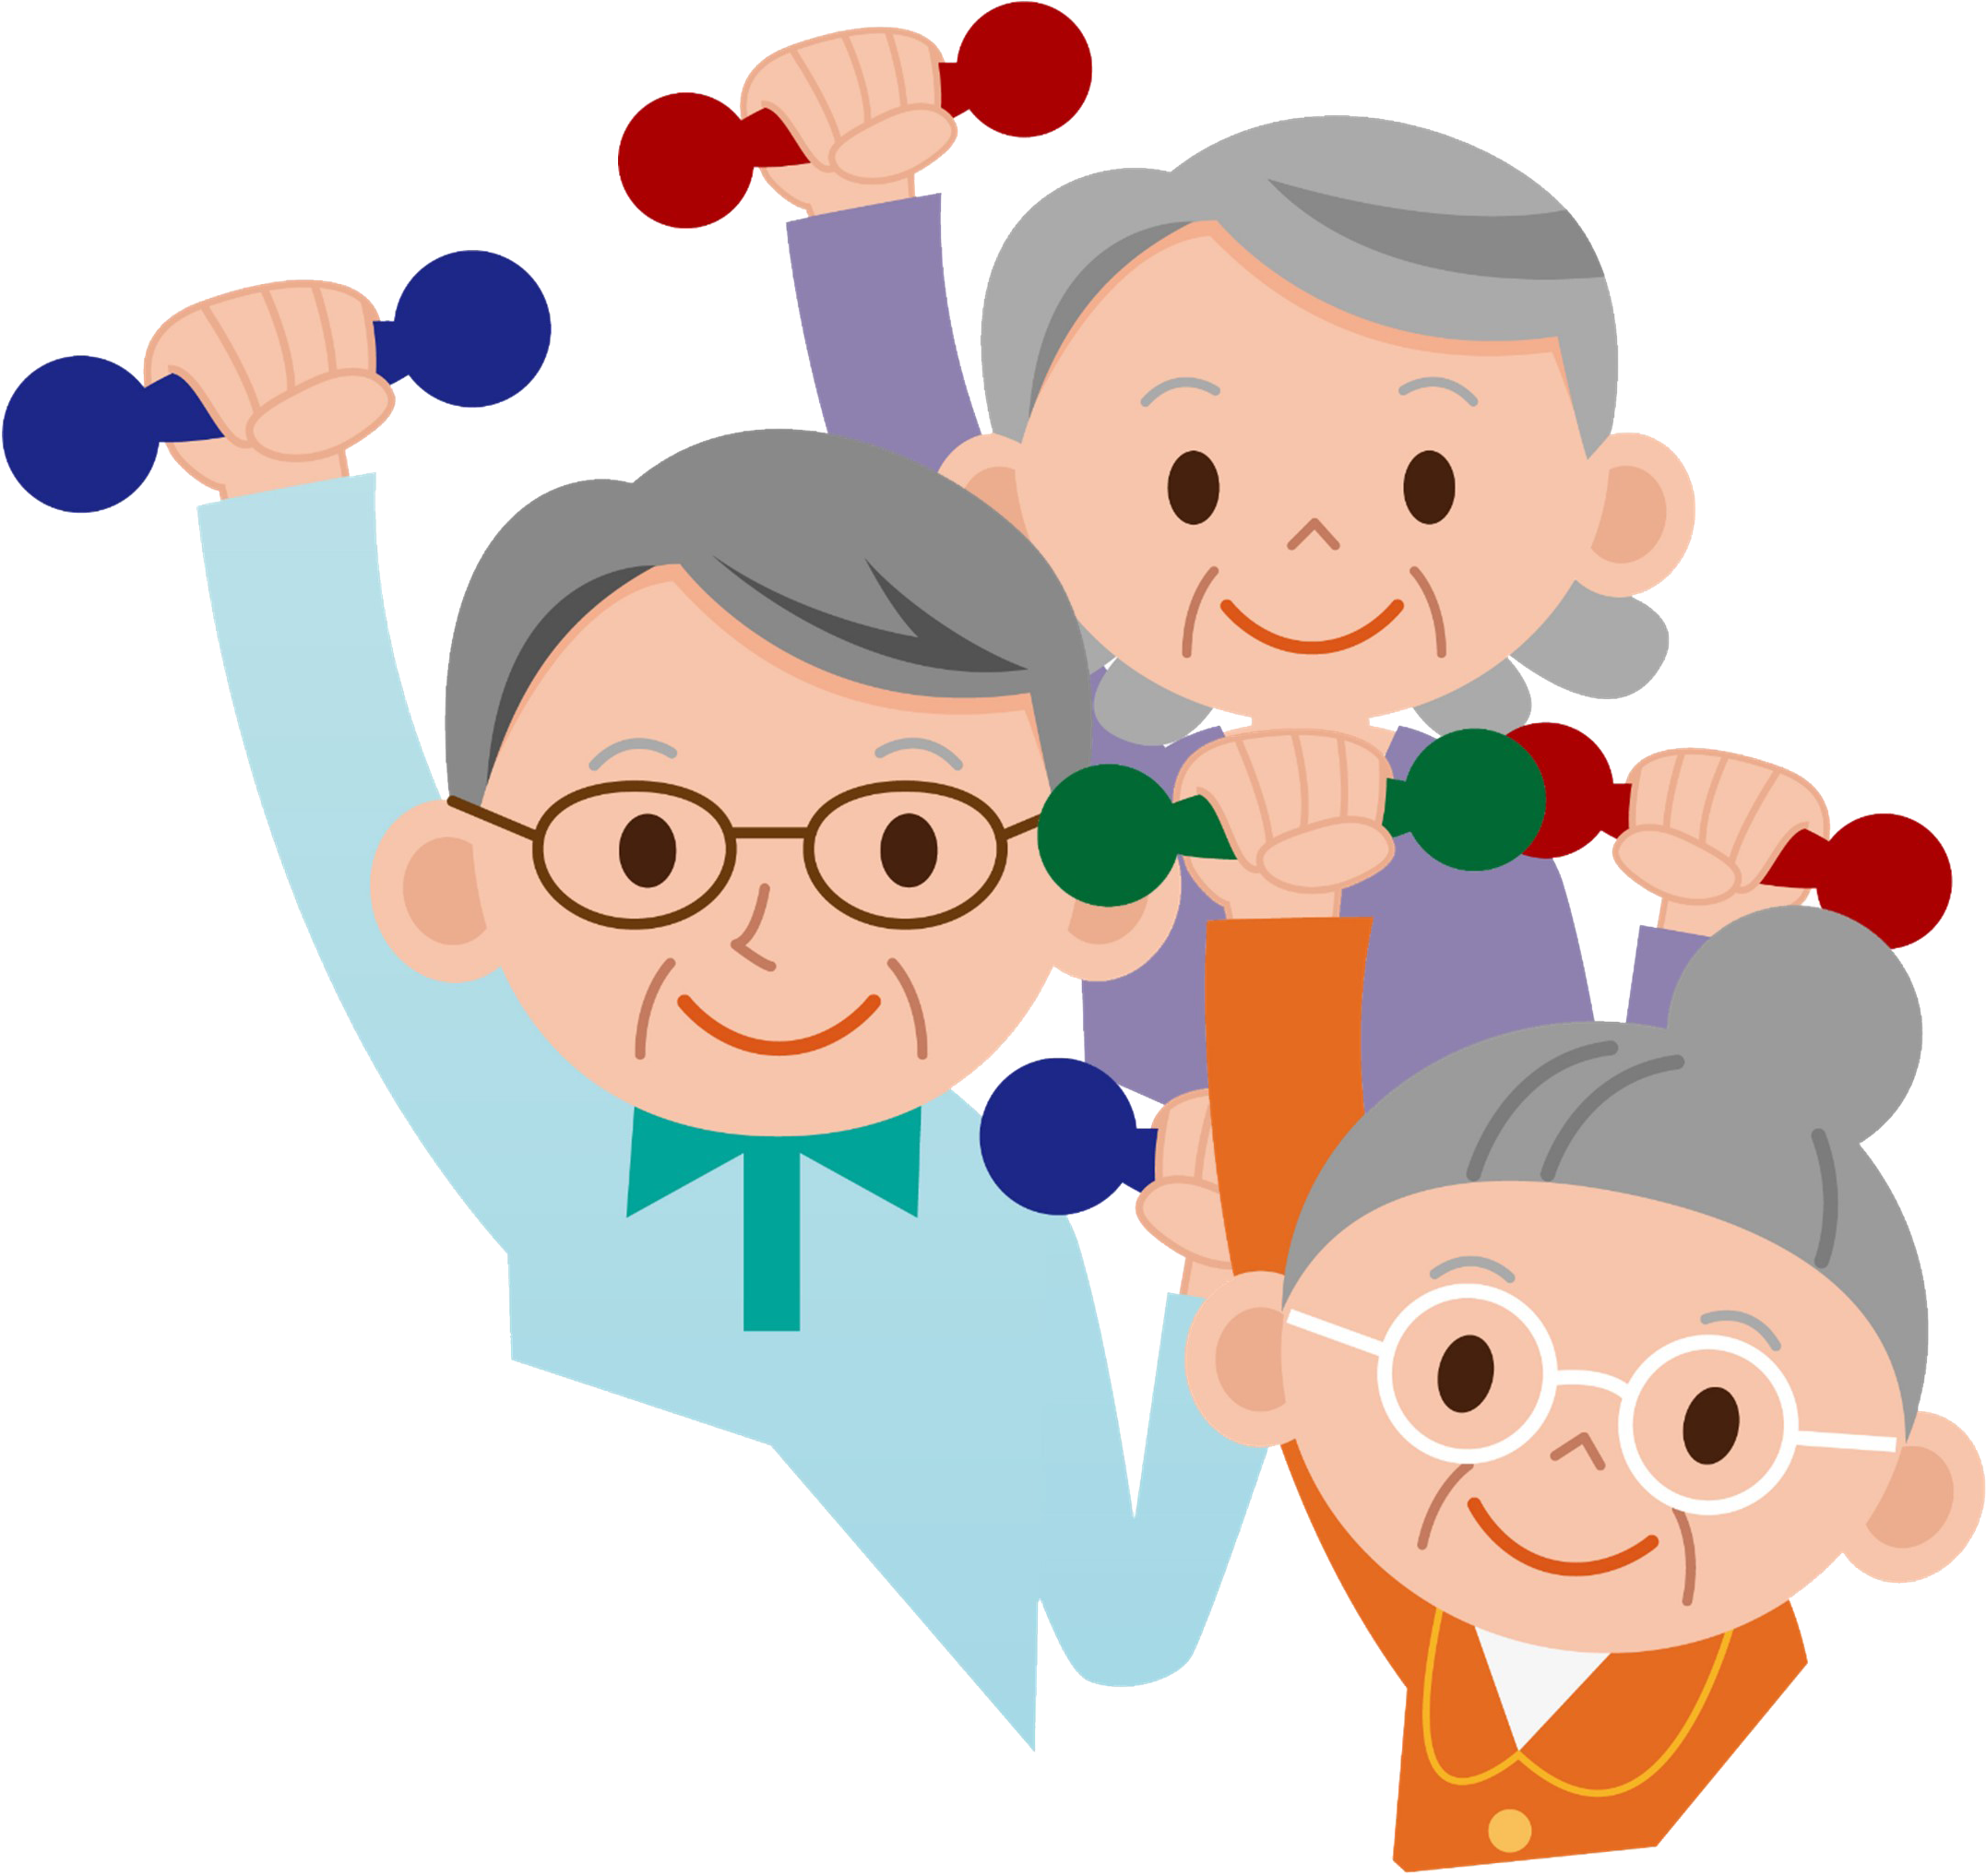 Senior exercise clipart clipart images gallery for free.